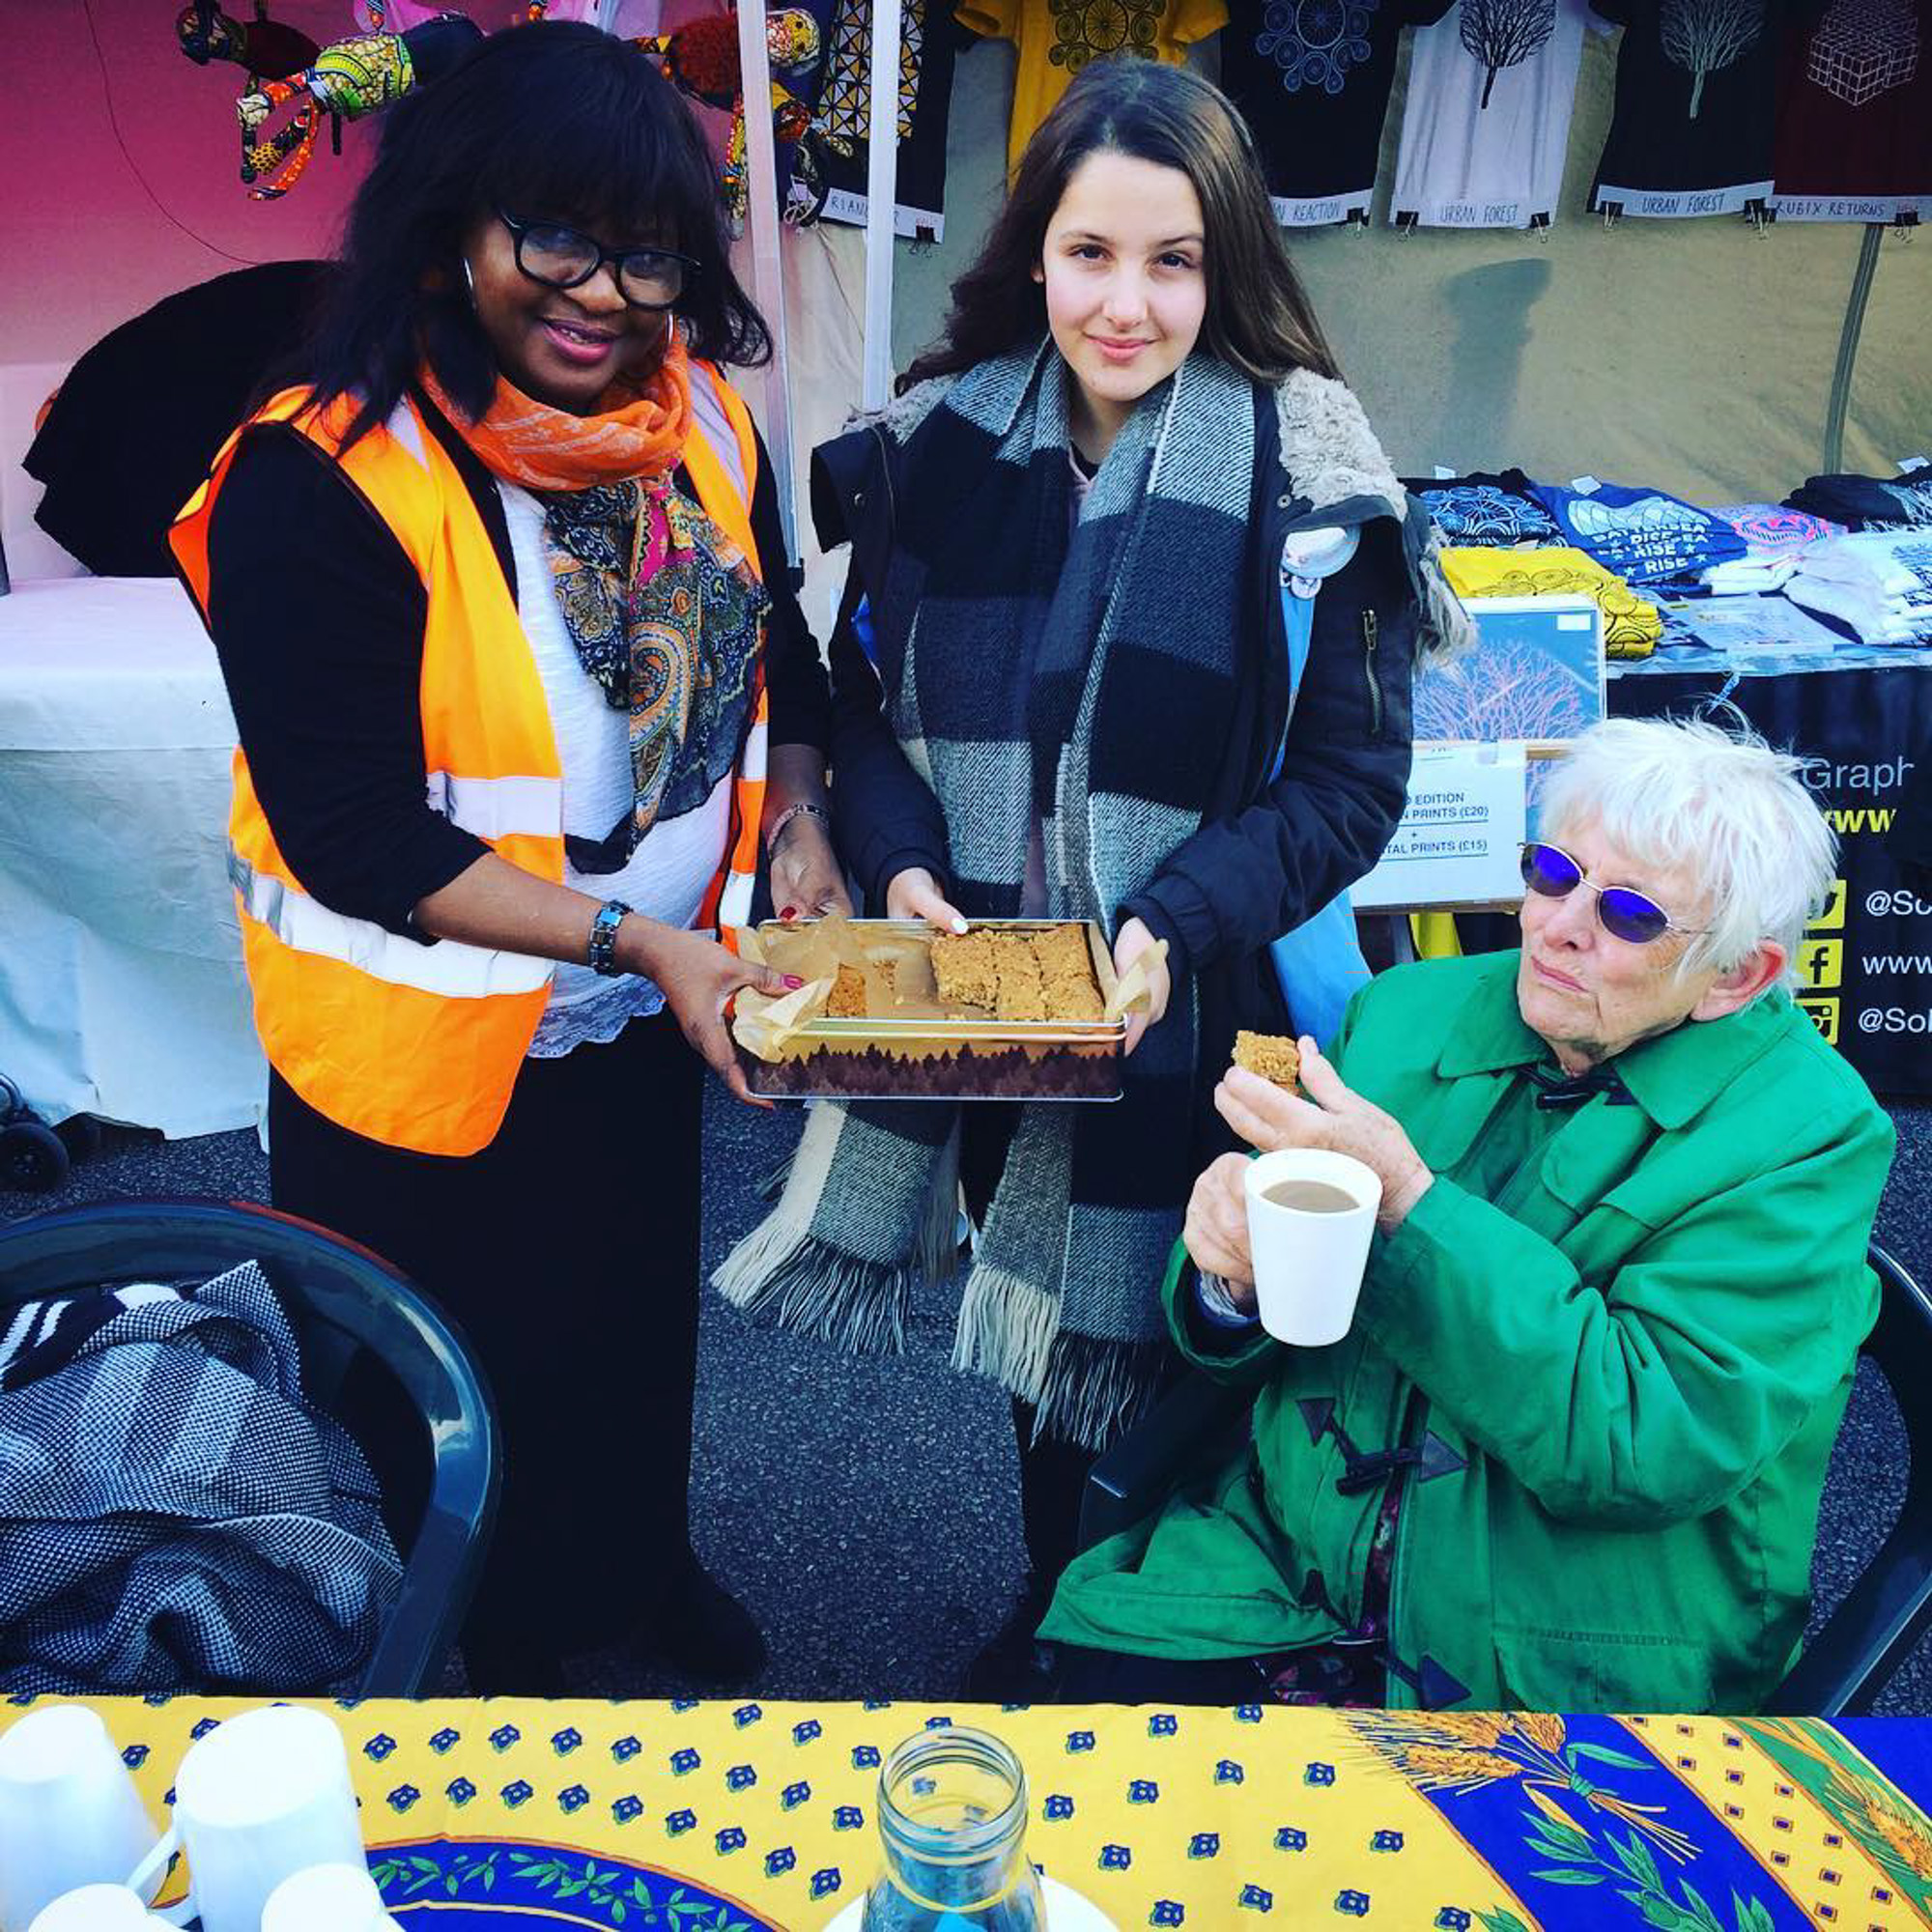 Free tea for pensioners at Artisans' Market West Norwood Feast